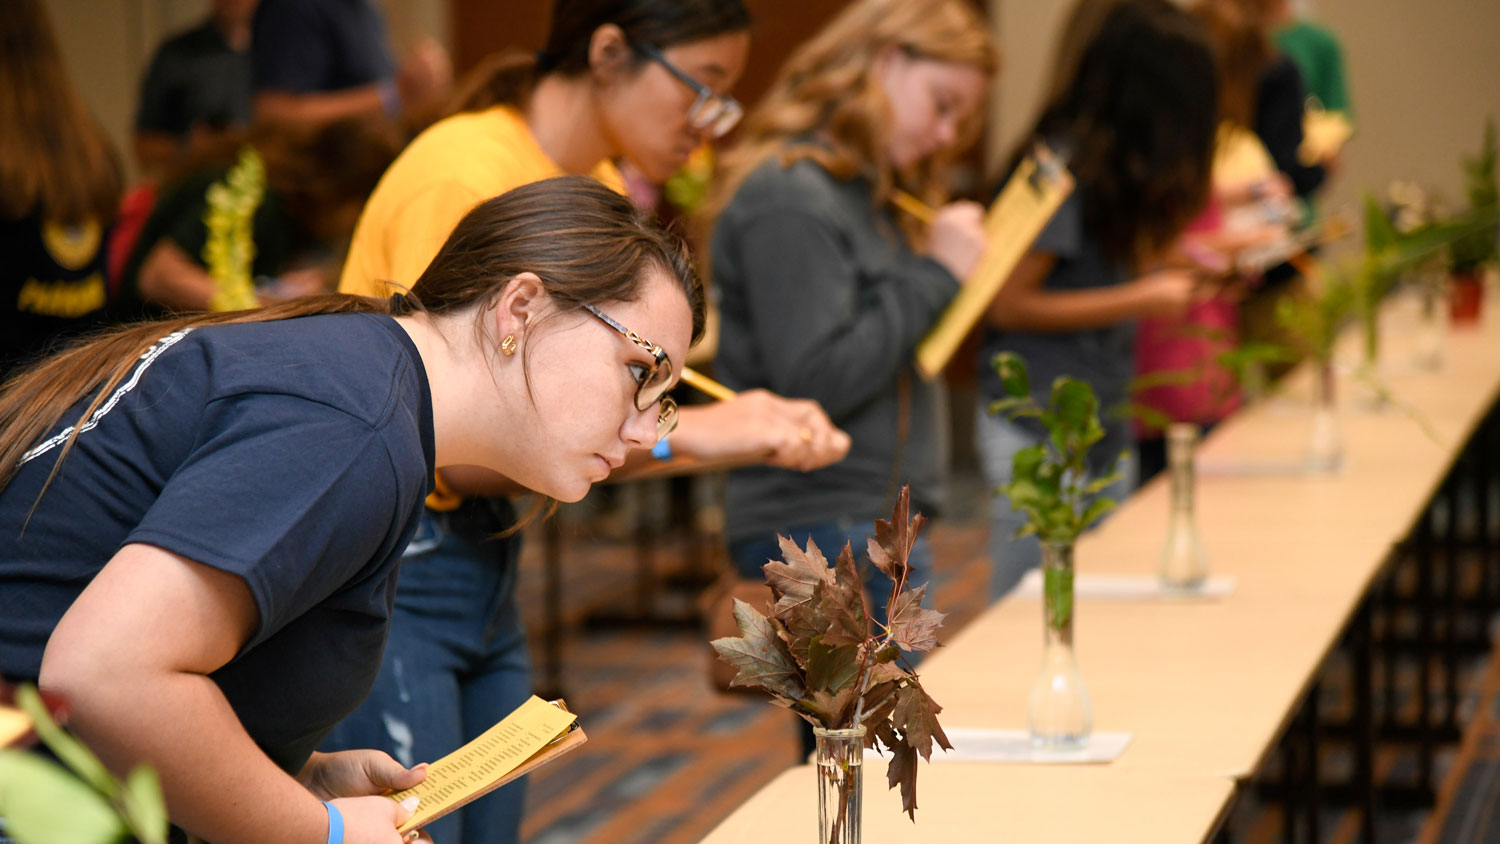 Young woman judging an FFA event